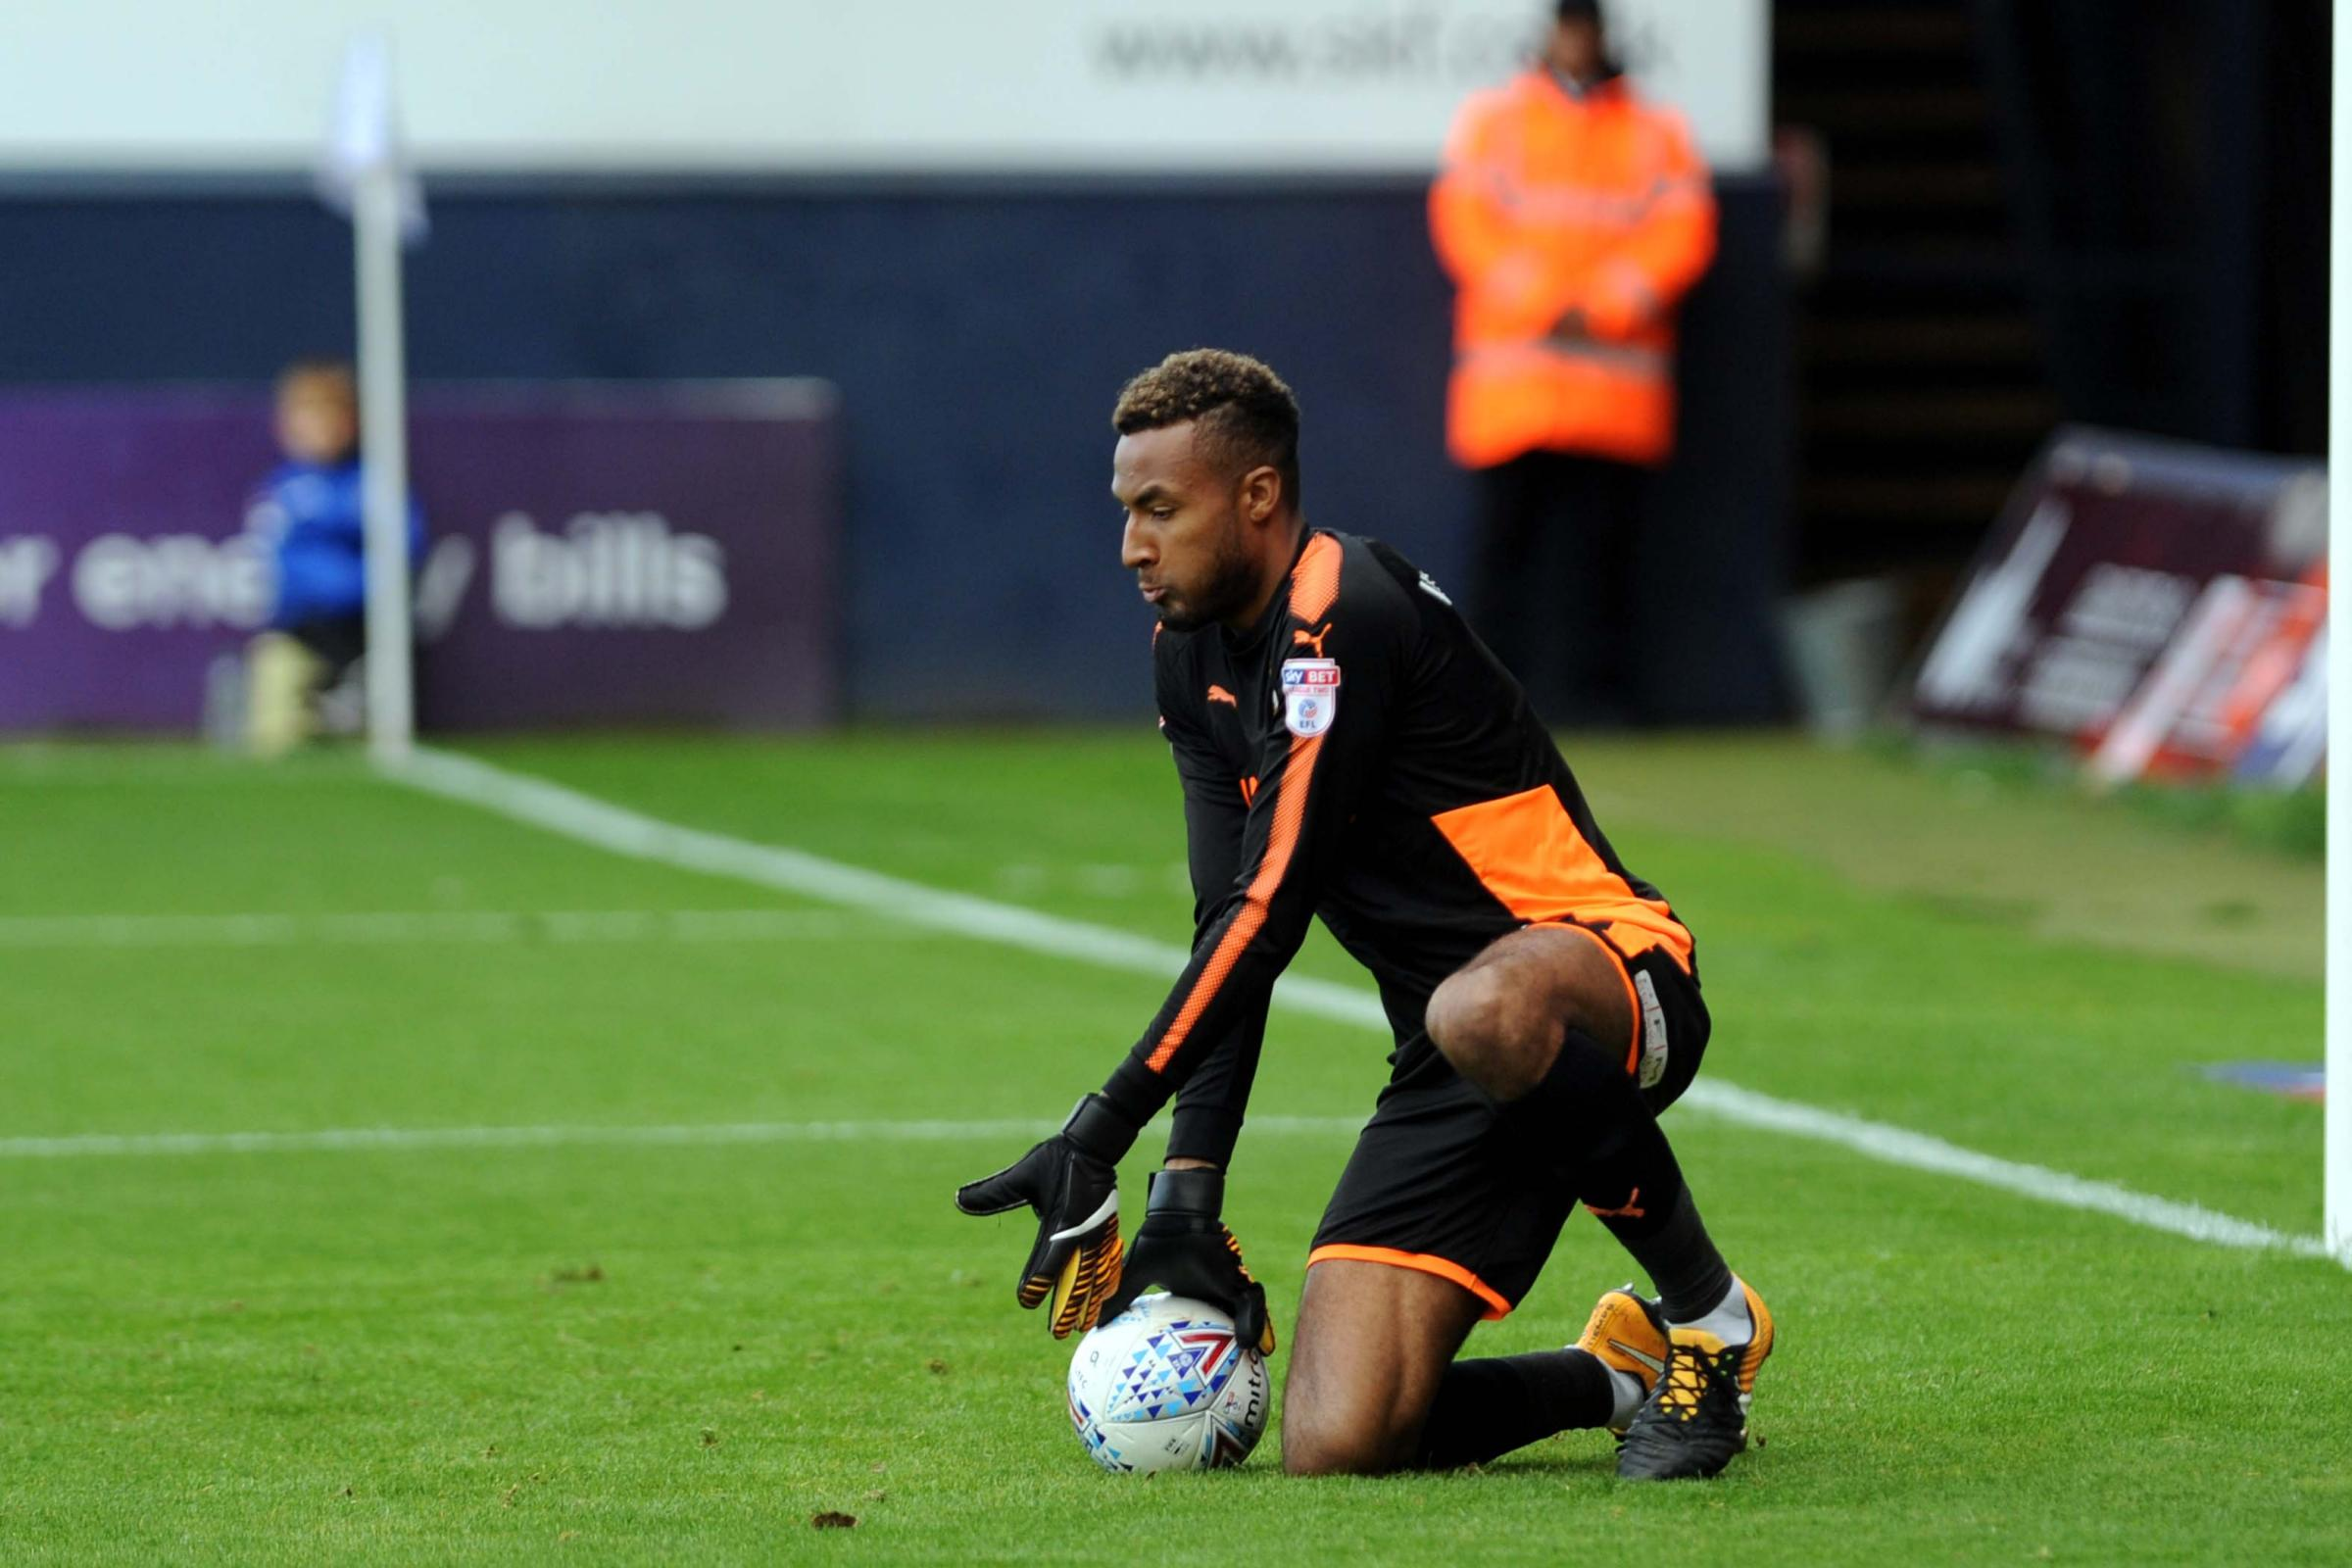 Lawrence Vigouroux is currently serving a four-game suspension